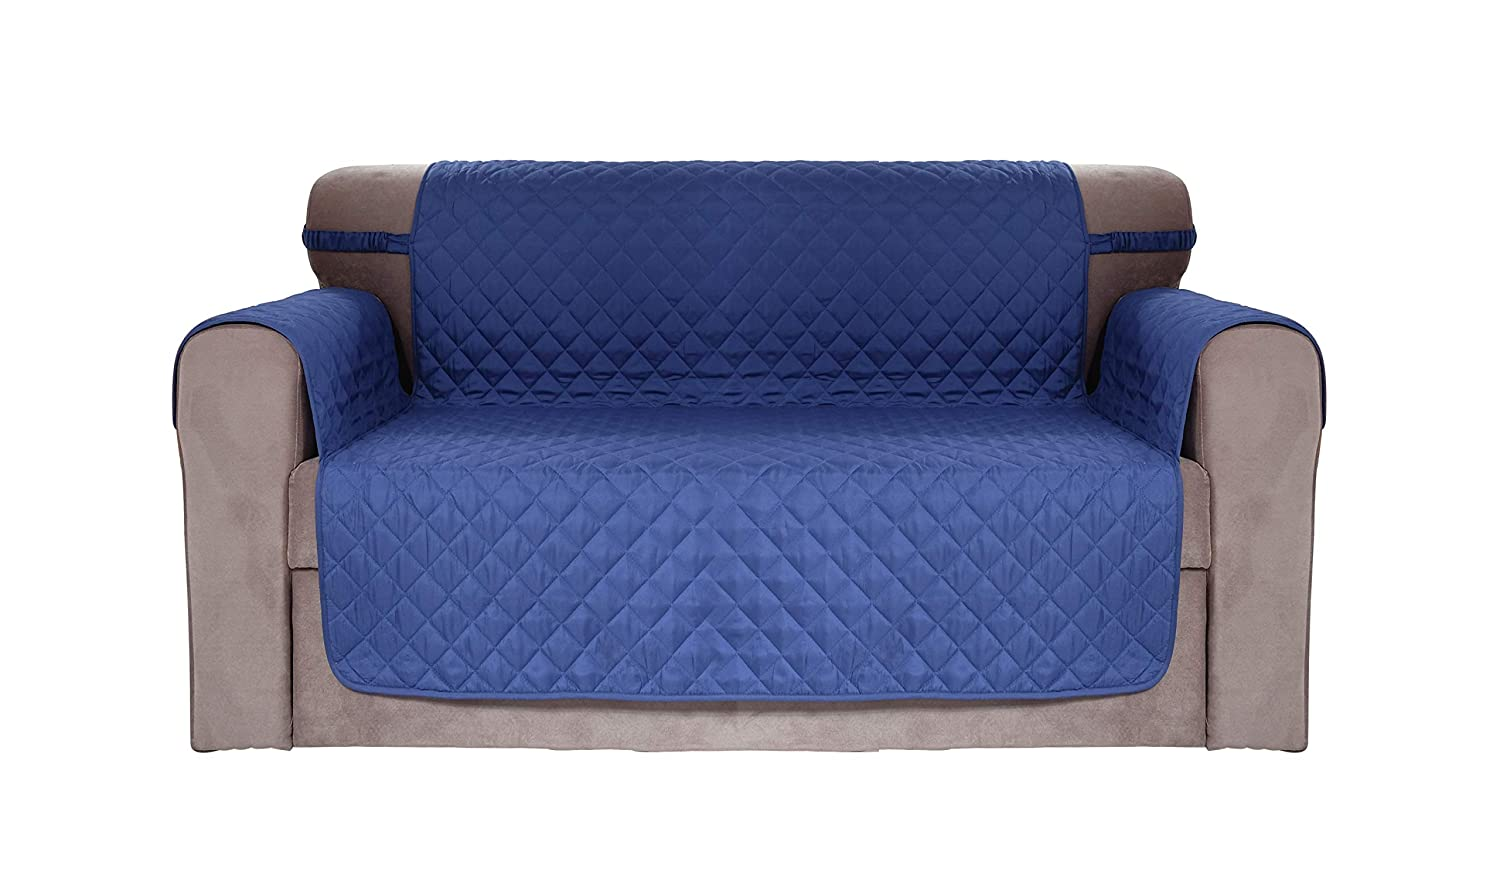 Chiara Rose Waterproof Couch Covers for Dogs Sofa Cushion Slipcover 2 Seater Furniture Protectors, Loveseat, Navy